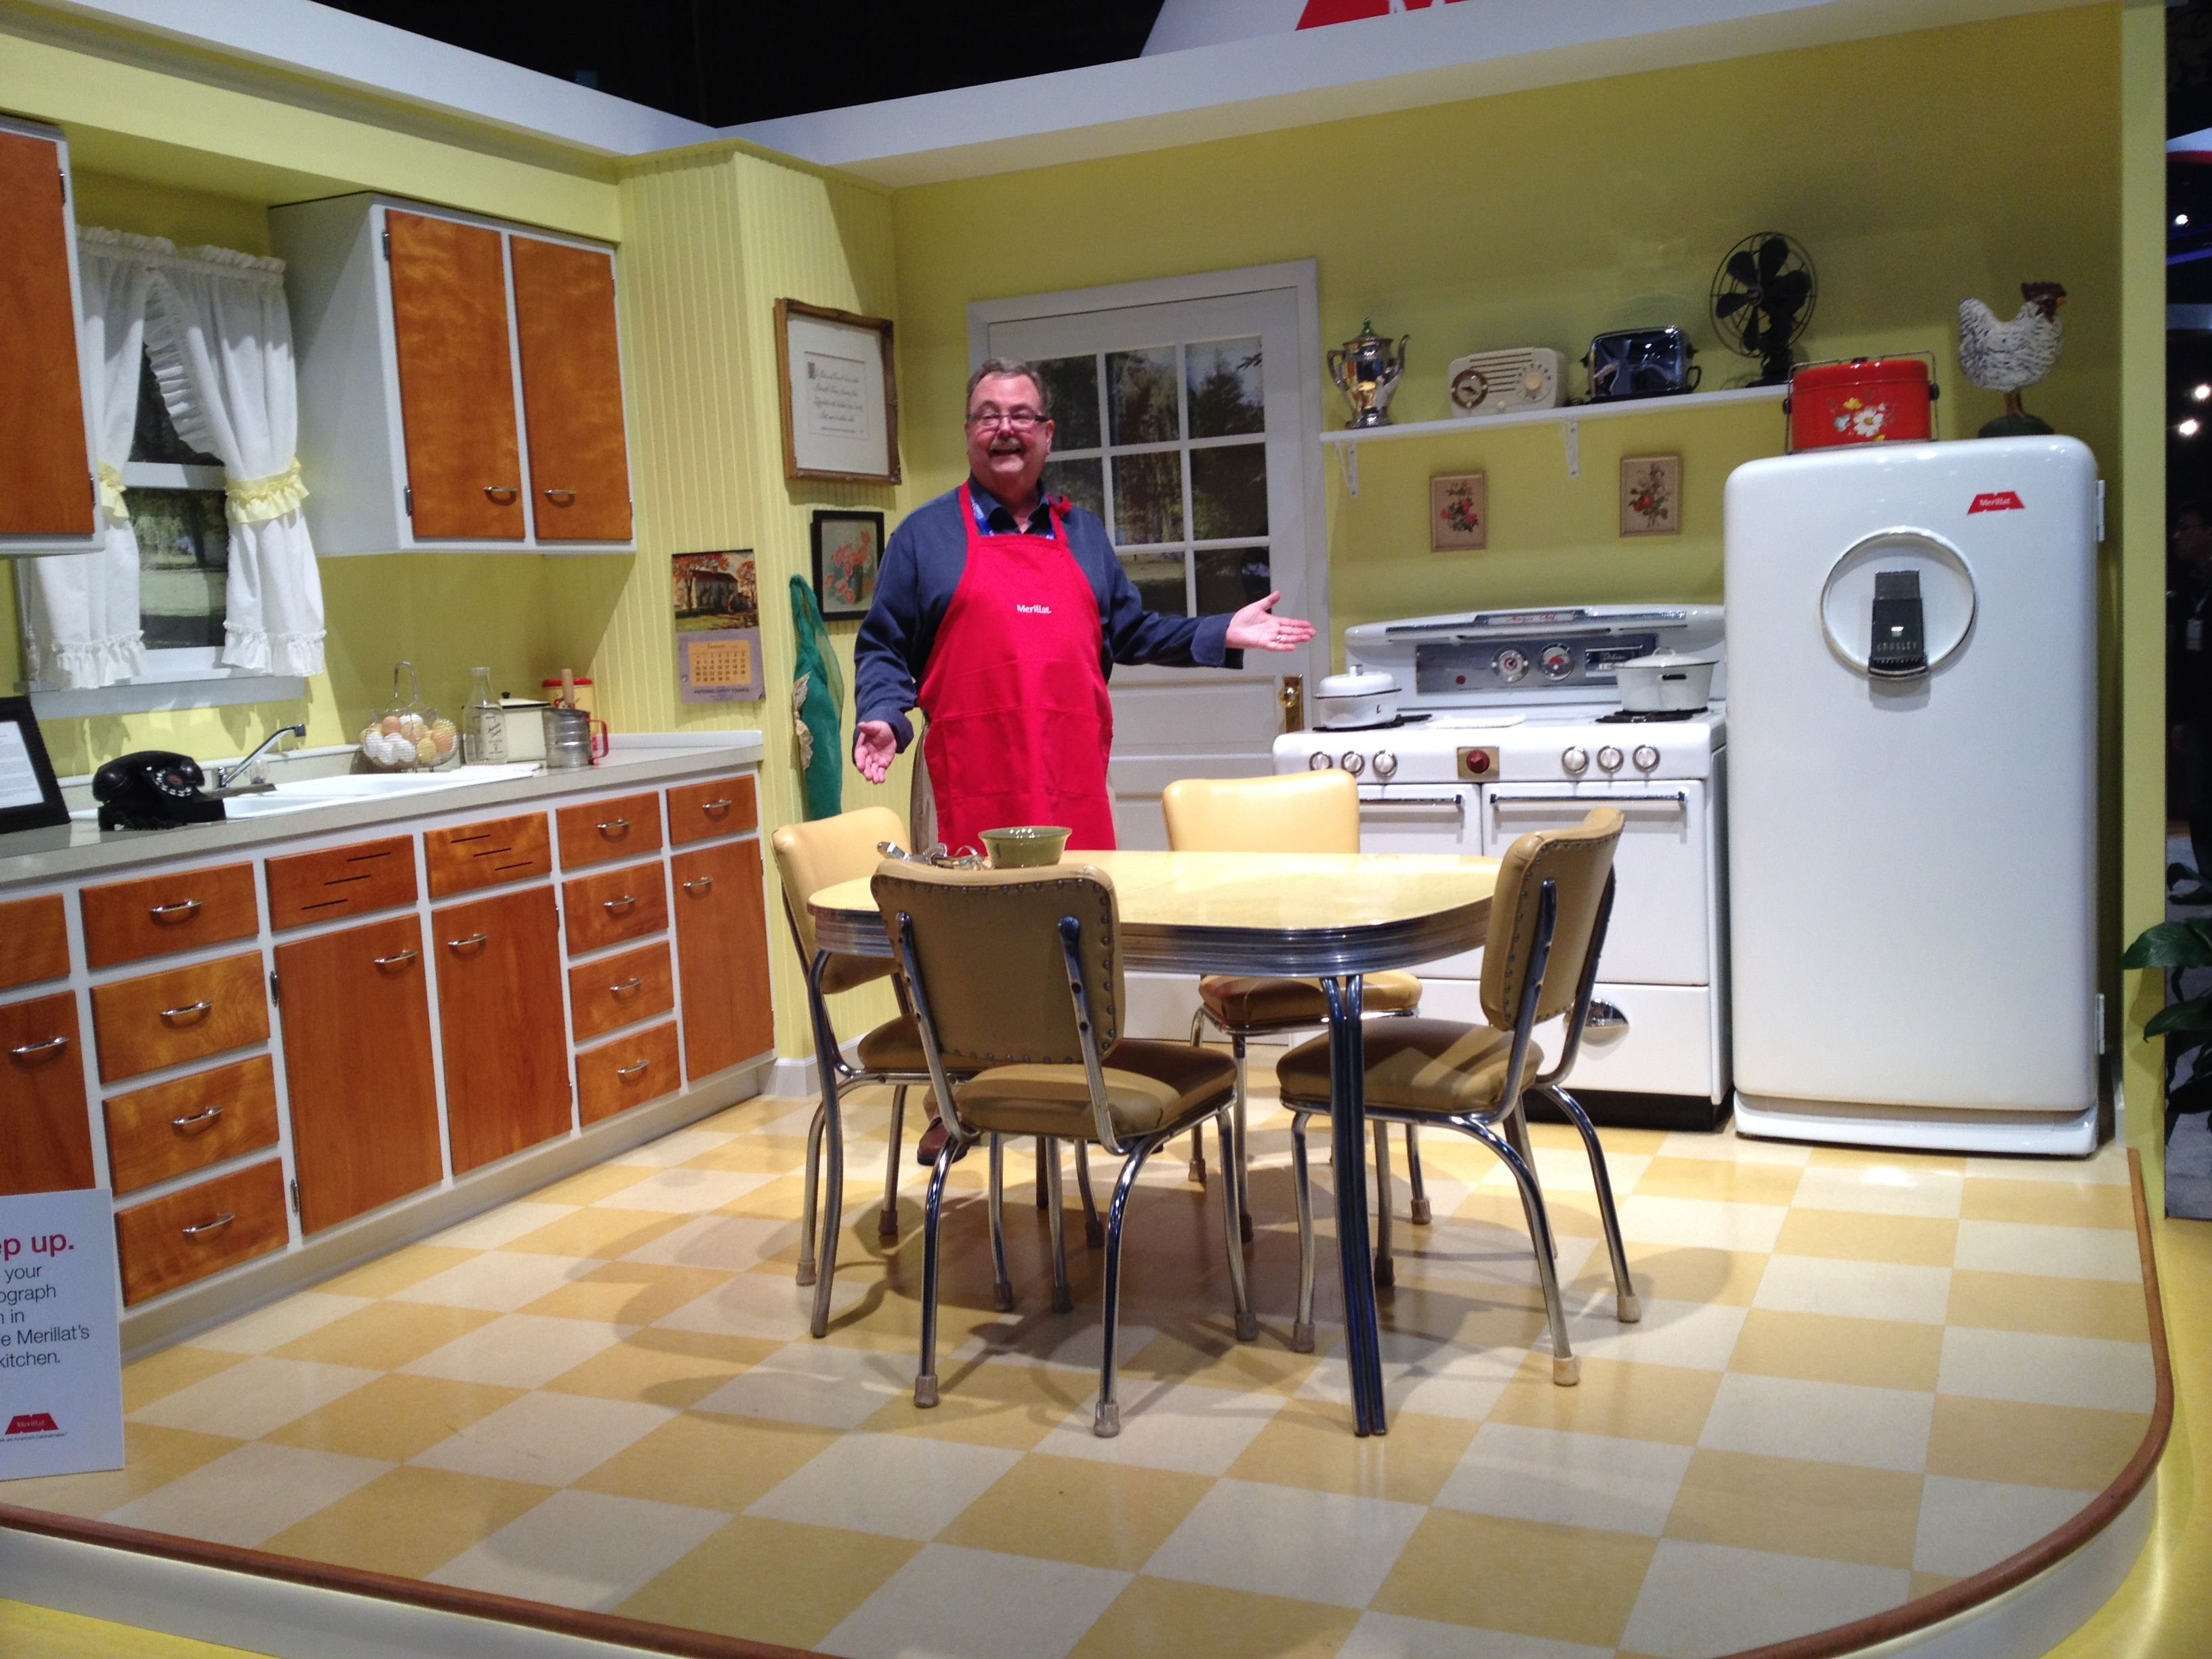 Gary Sannes From The S. Janis Company In The 1946 Merillat Kitchen On  Display At 2014 Kitchen And Bath Industry Show (KBIS)